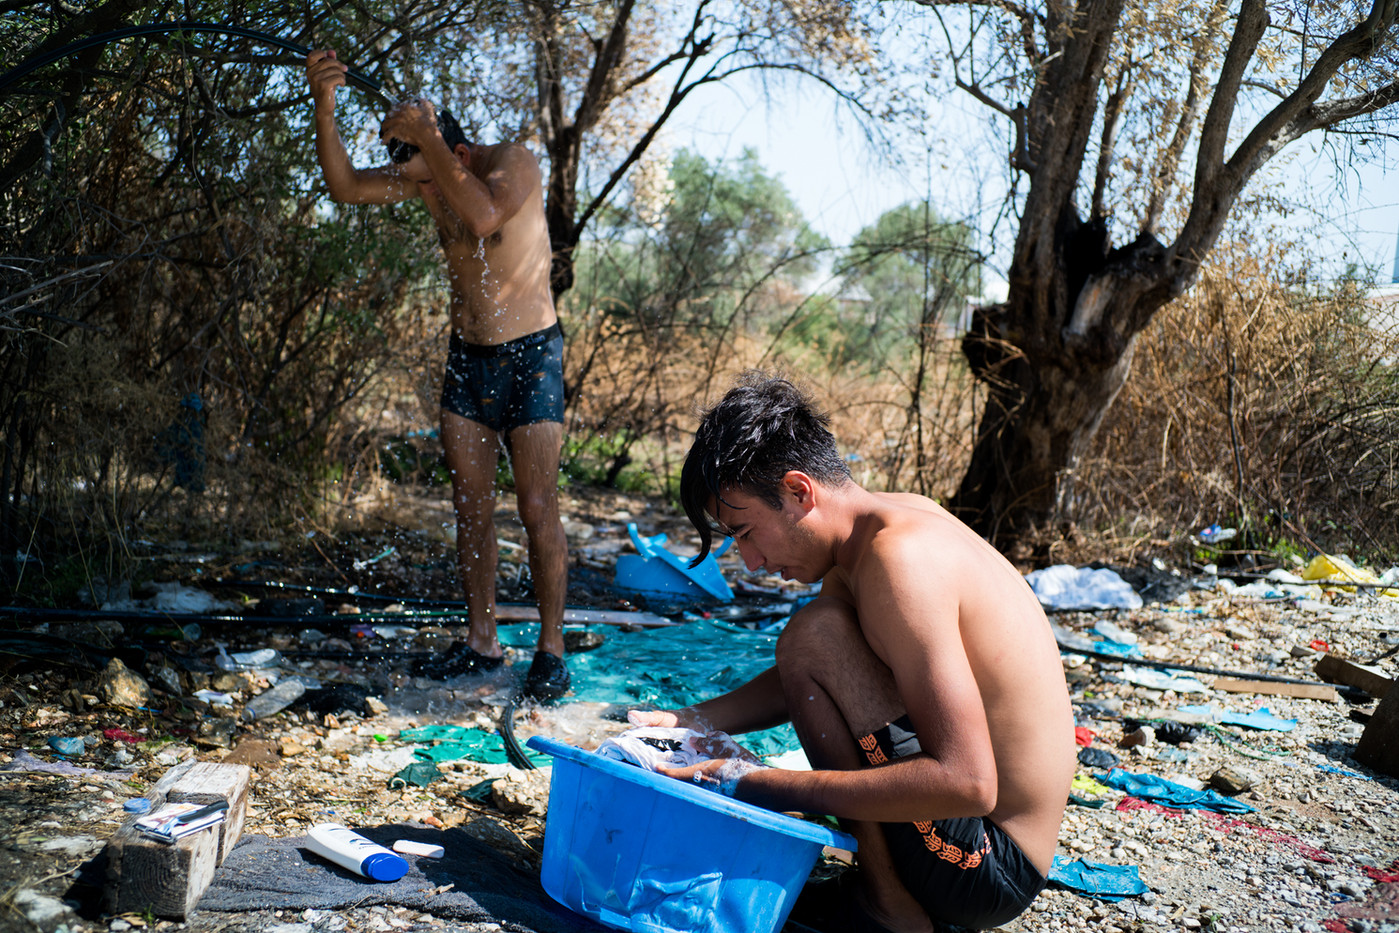 Refugees take a shower and wash their clothes on a makeshift space on the side of the road. After moving to the new camp, people were forced to carry out this type of action outside due to lack of water, toilets and electricity.